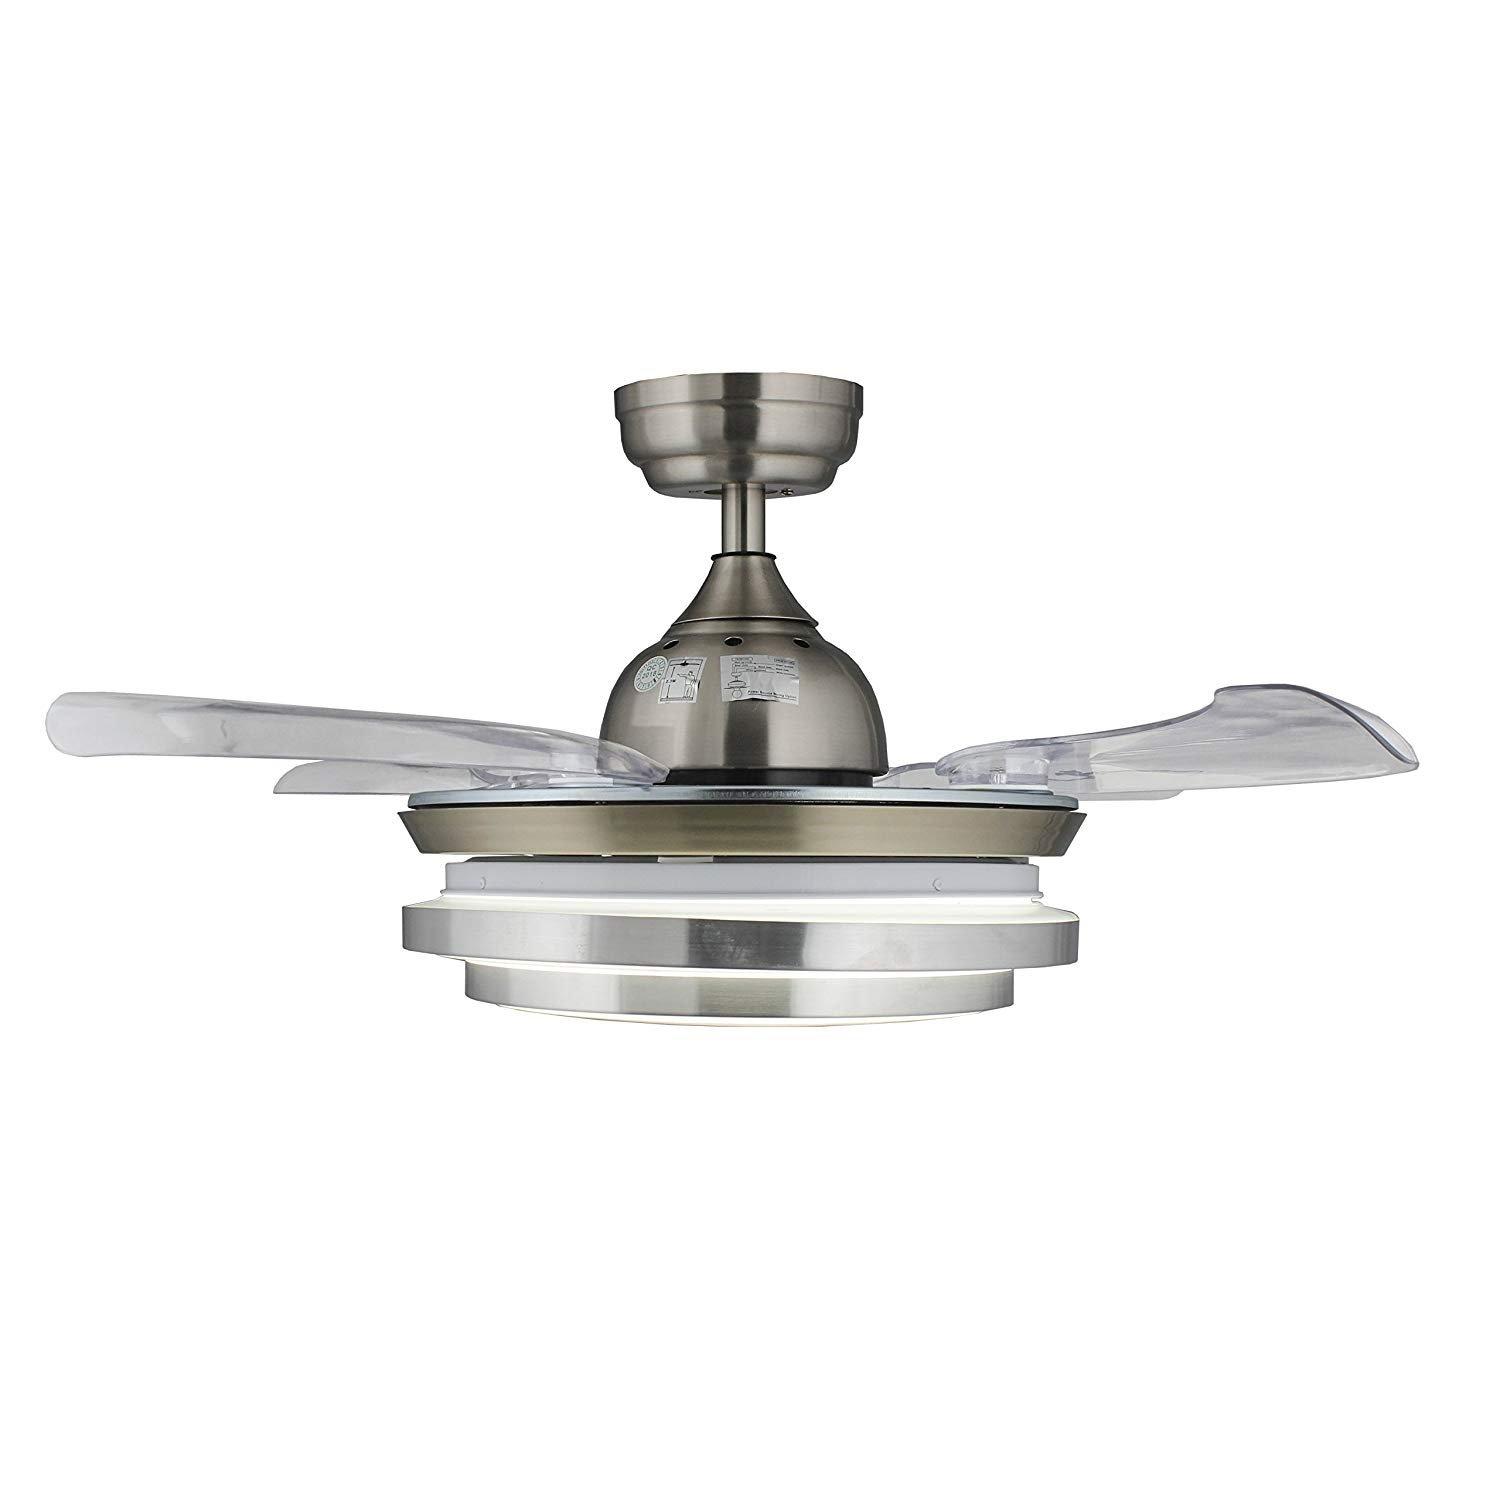 36 Crystal Ceiling Fans Acrylic Retractable Blades with 30W LED Light Kits 3000K-4000K and Remote Control, Chrome Finished